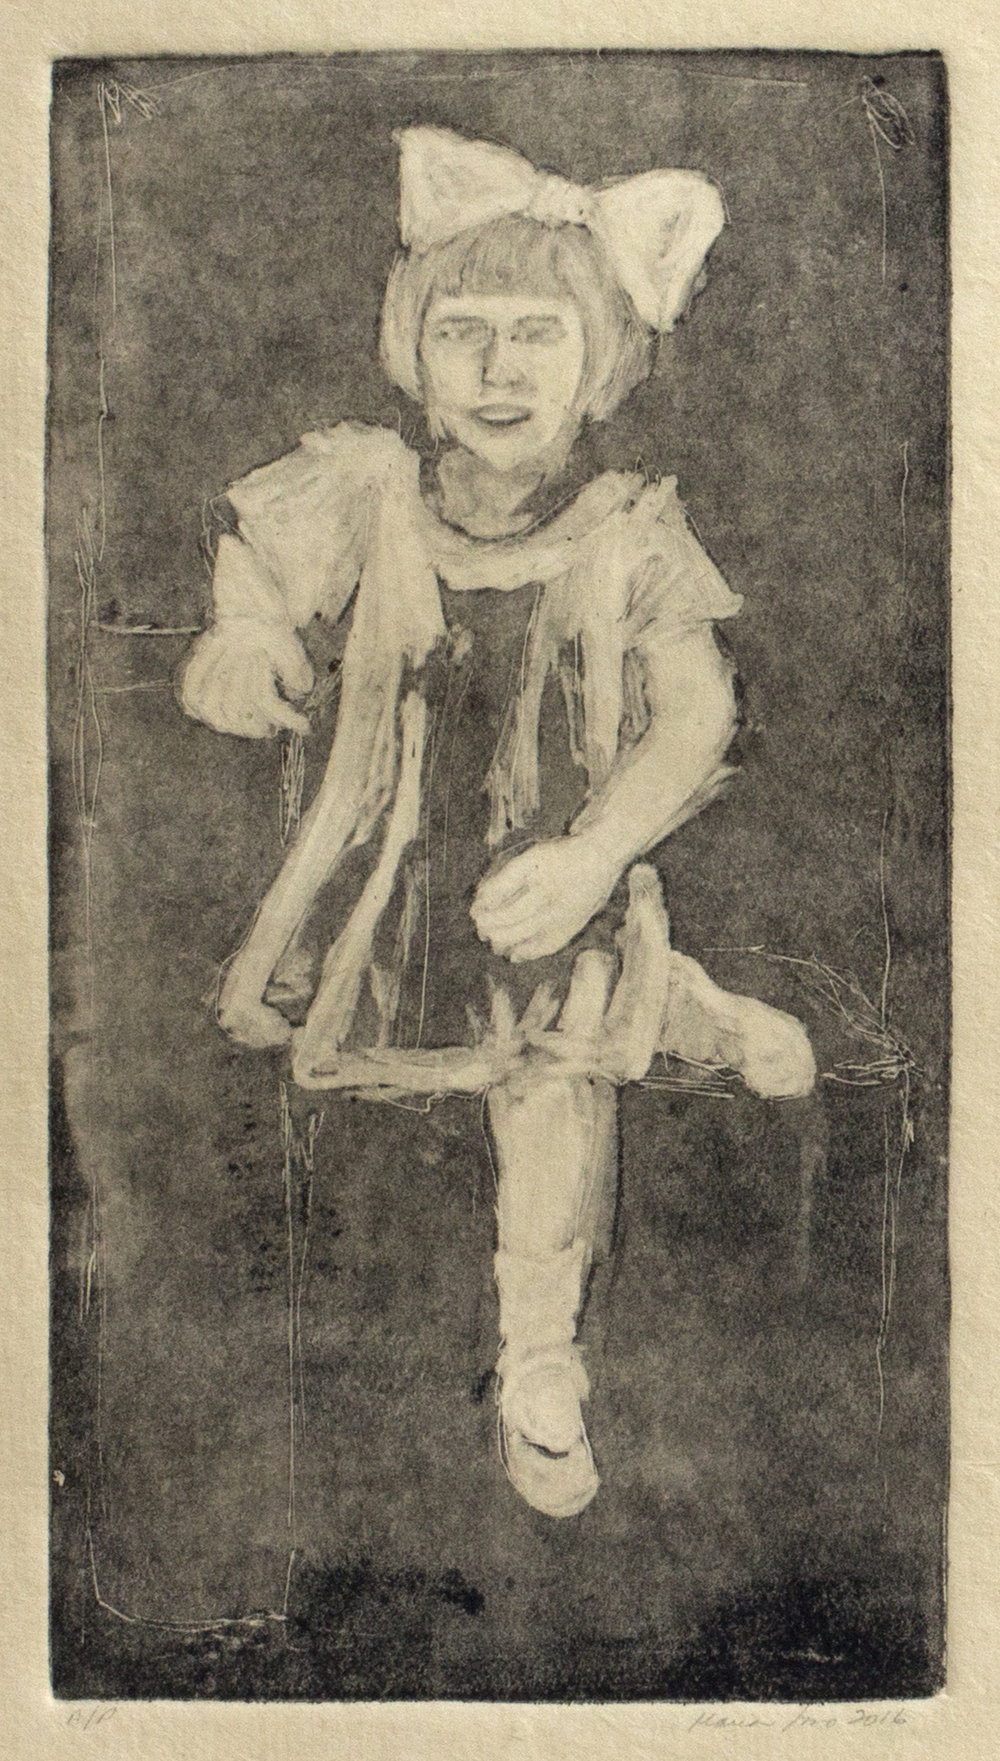 Tia Olga with Bow (Ghost Print on Sepia Paper), 2016